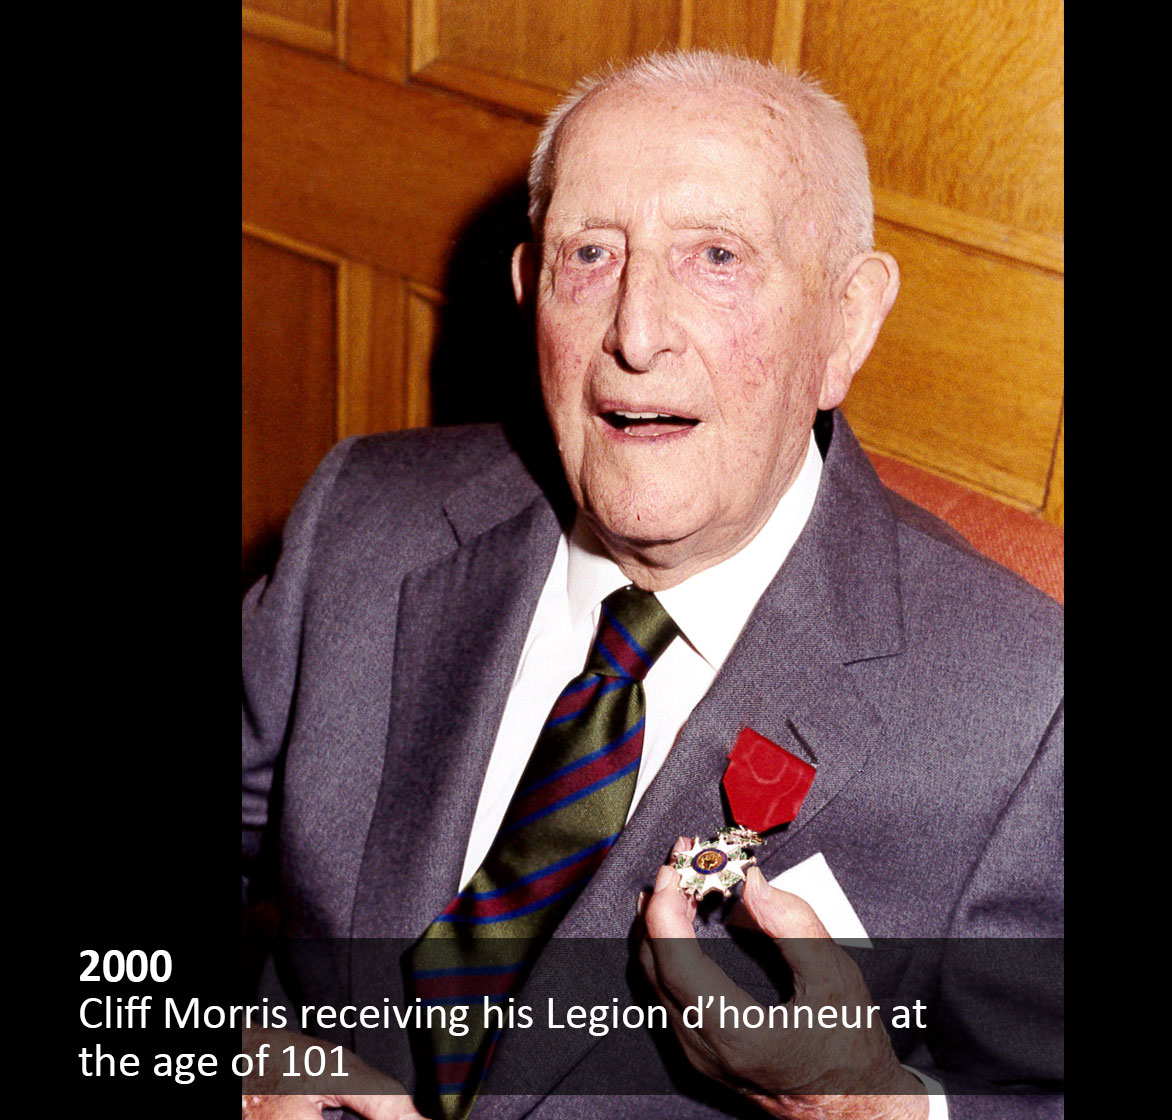 Cliff Morris receiving his Legion d'Honneur at the age of 101